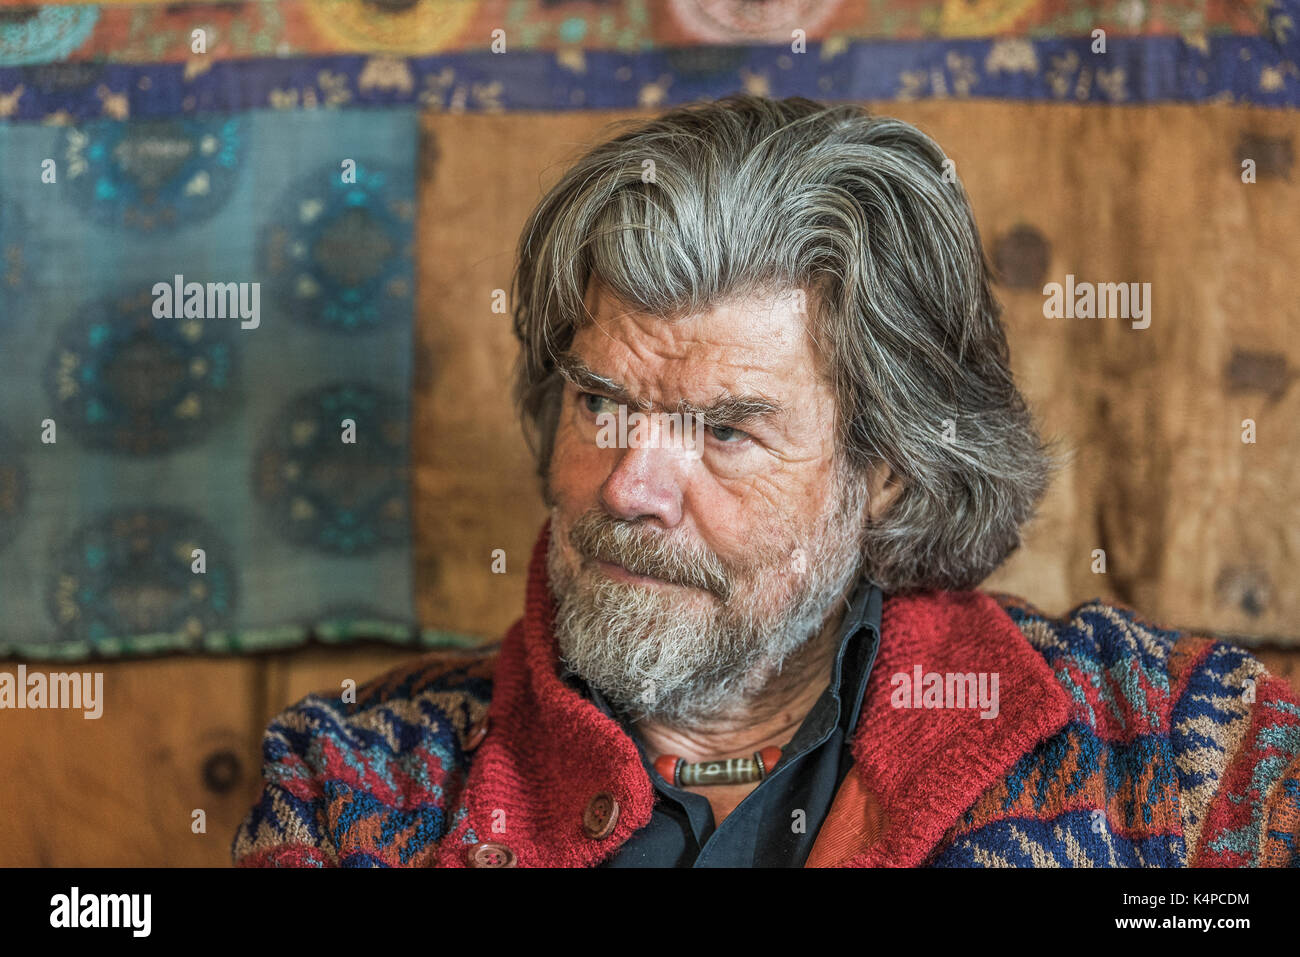 Alpinist Reinhold Messner at his Juval Castle in South Tyrol, Italy - Stock Image